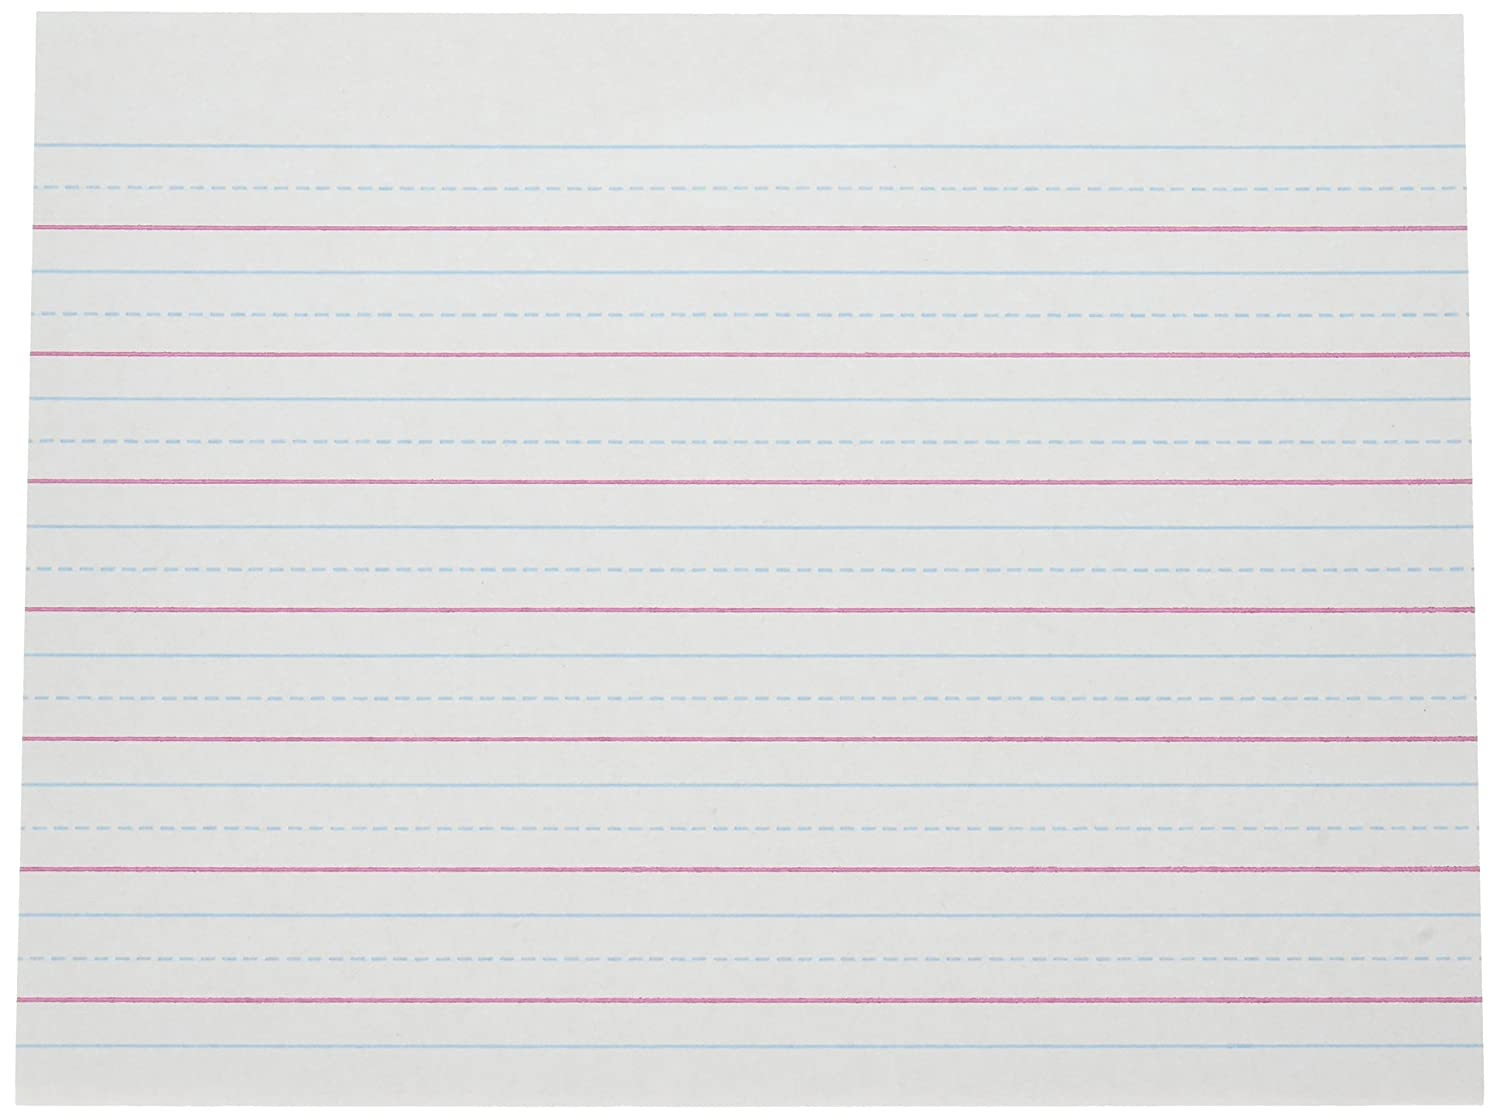 Pacon Multi-Program Handwriting Paper, 5/8 inch Long Rule, 10-1/2 x 8, White, 500 Shts/Pk FBA_2420